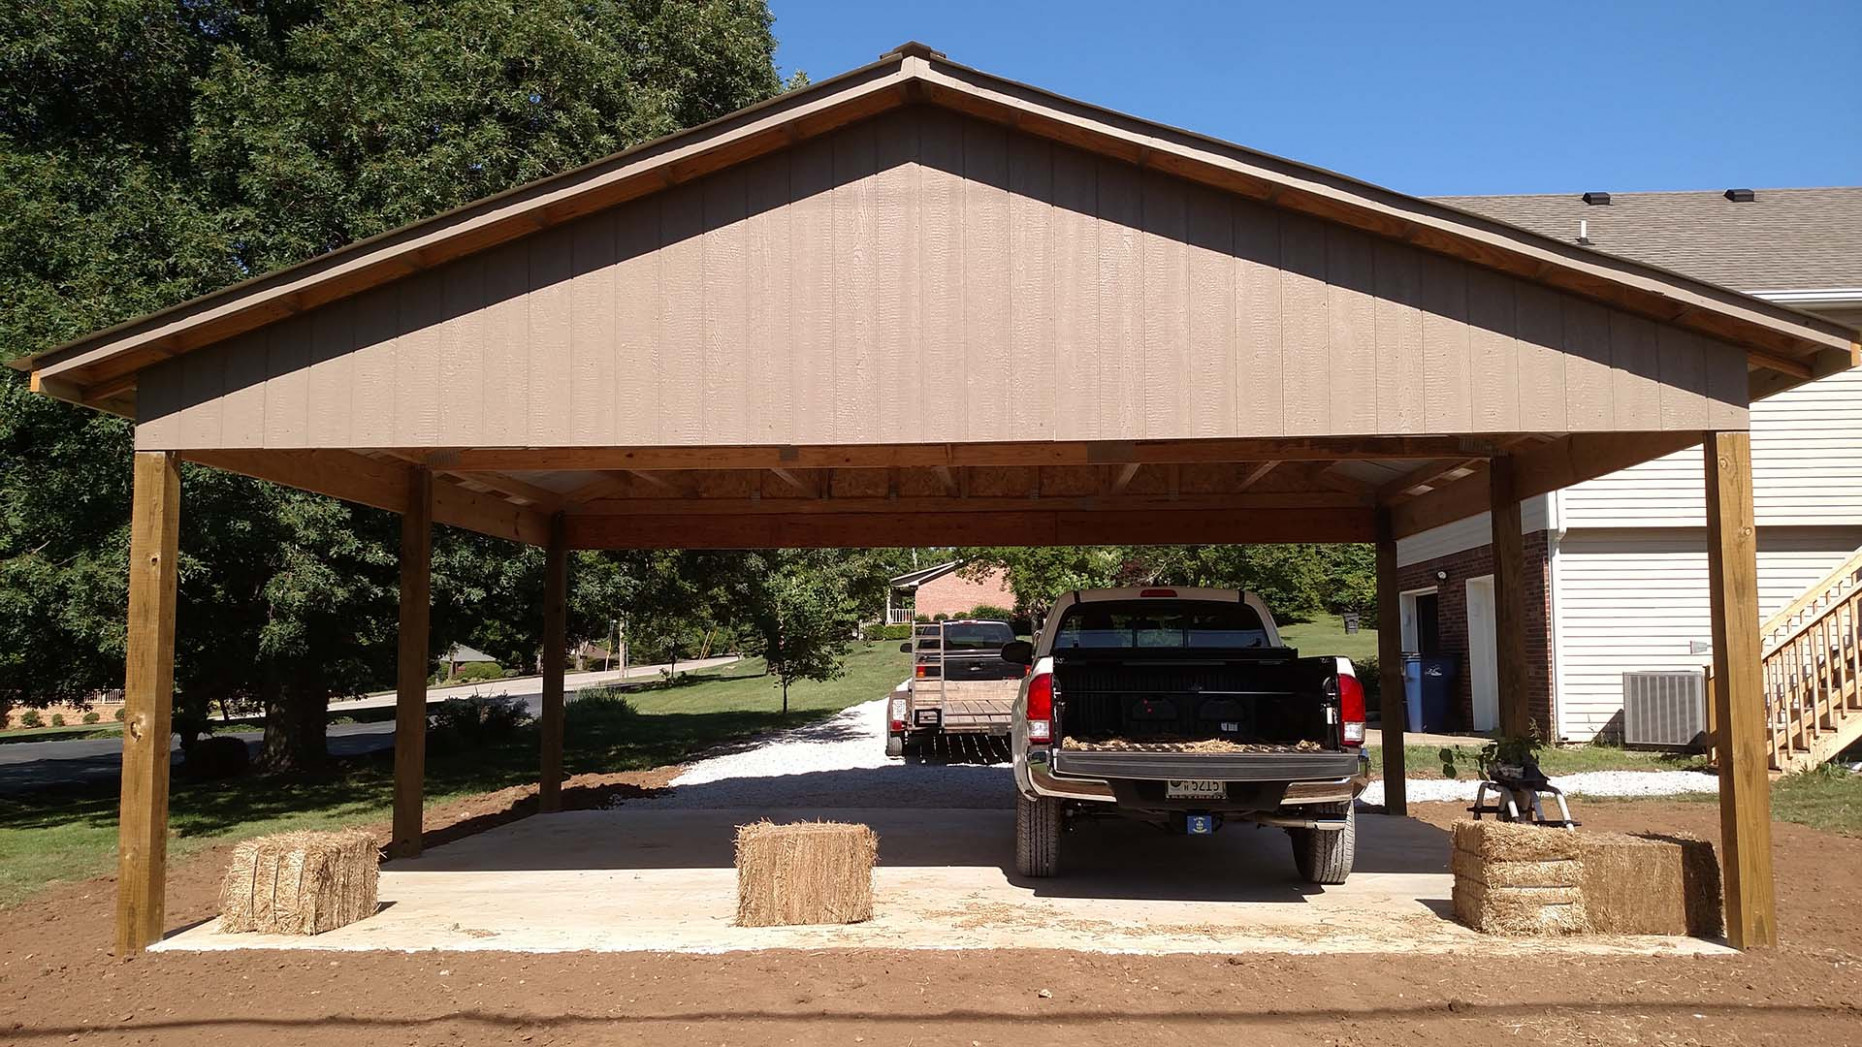 Garage Vs Carports: What Option Works Best For Your Home ..